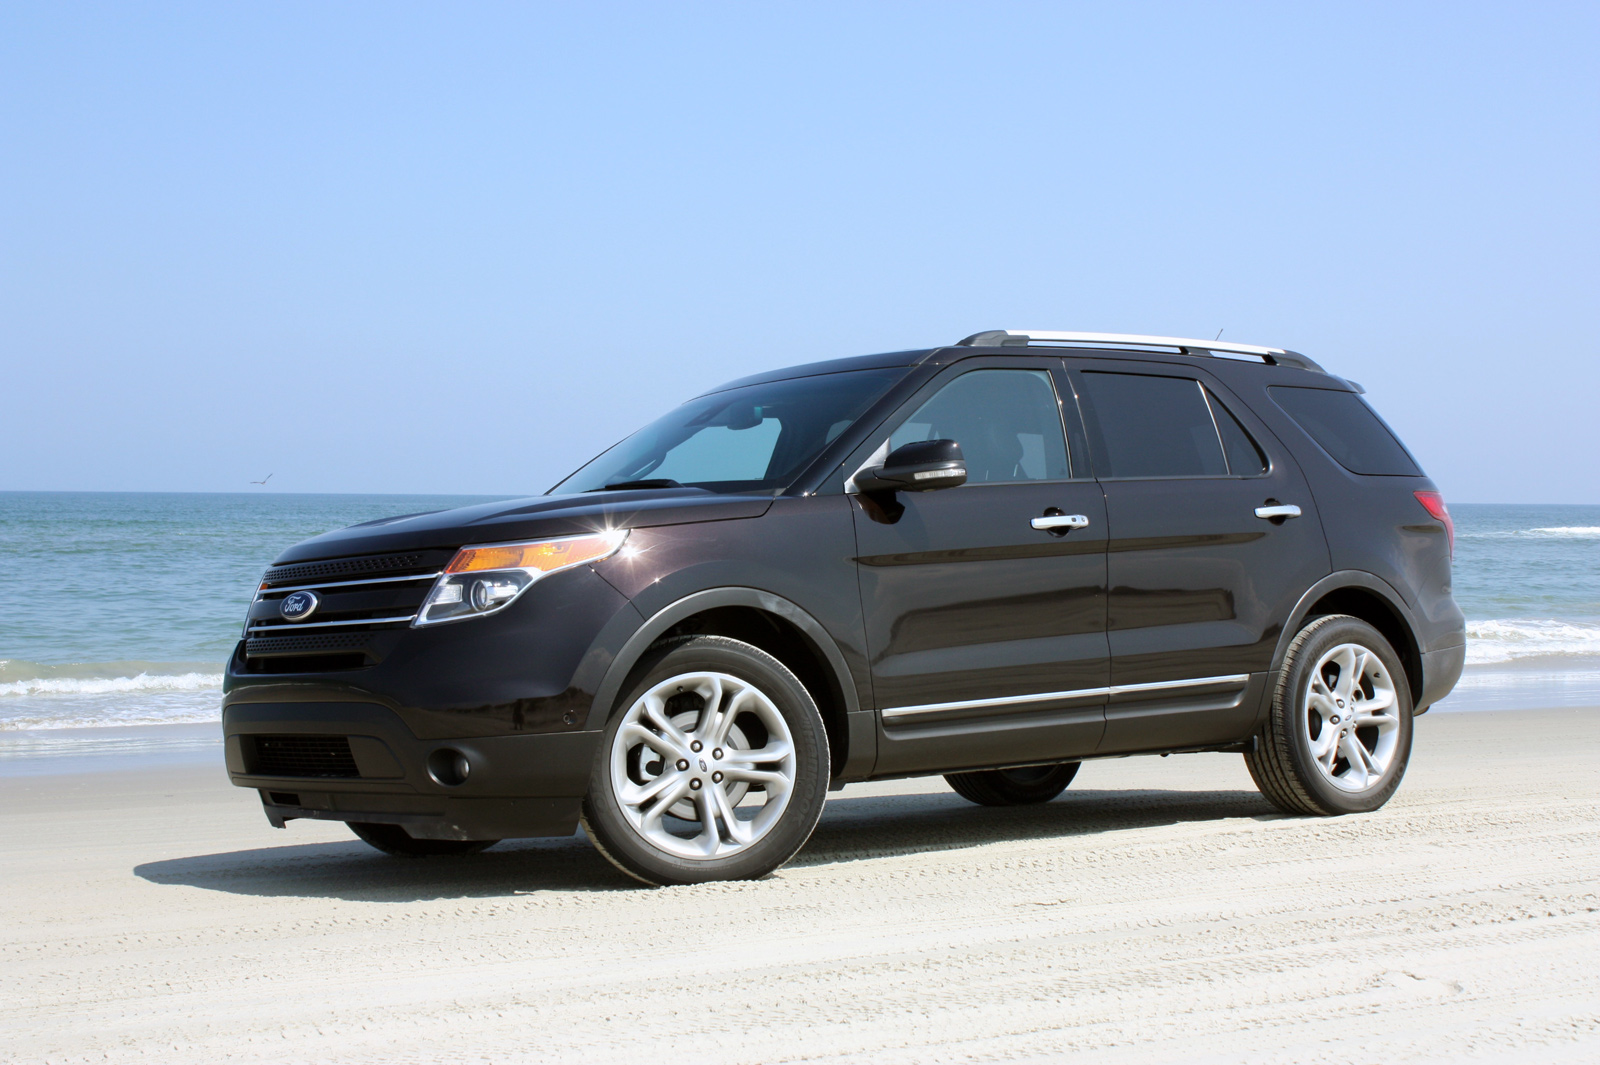 2012 ford explorer limited awd quick spin photo gallery autoblog - Ford Explorer 2012 Black